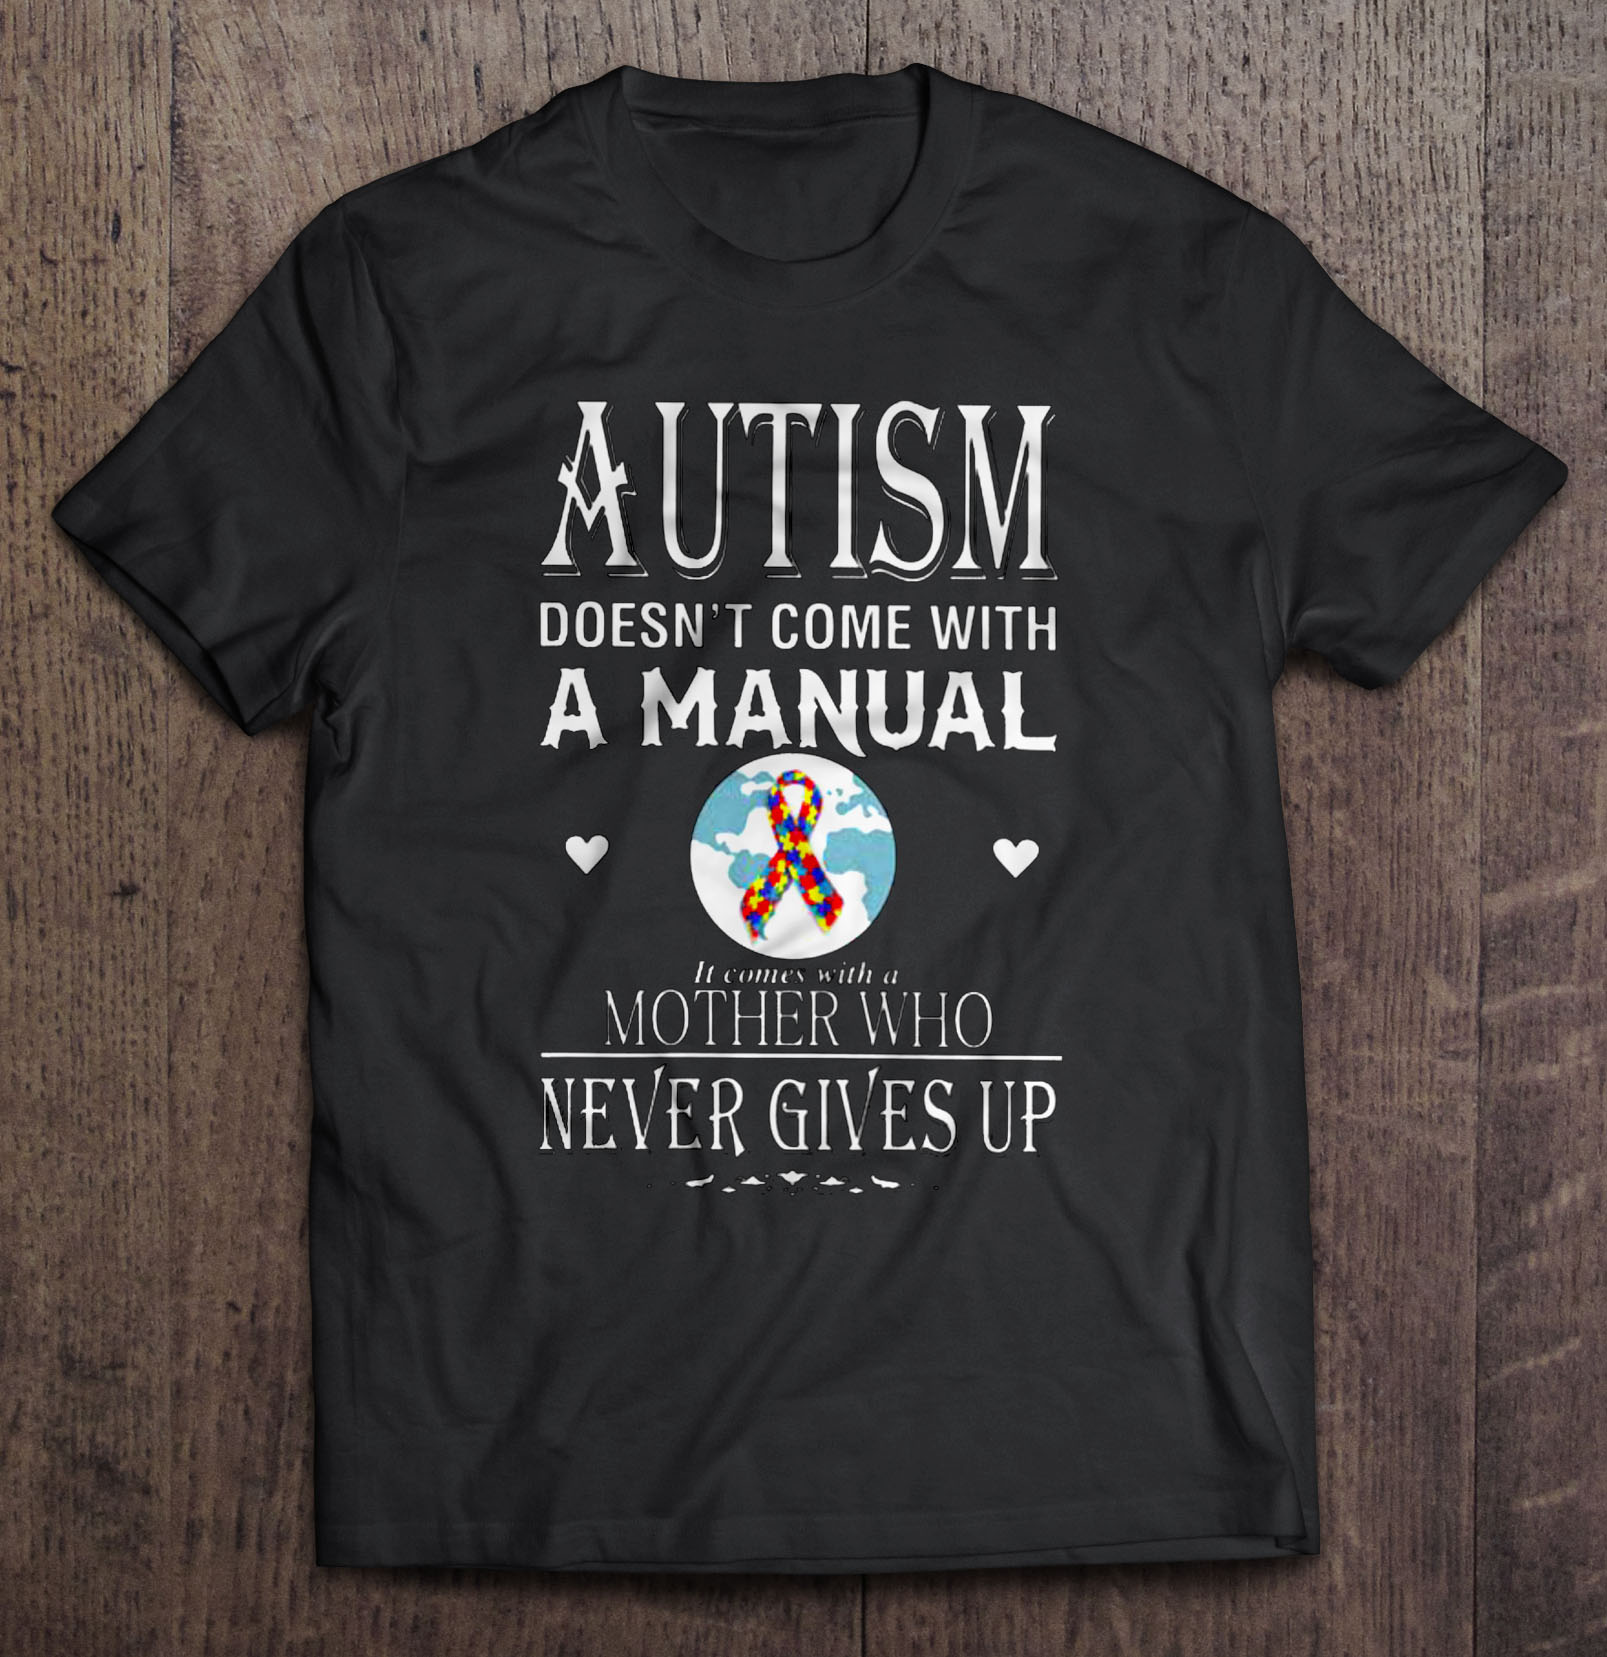 170405Fd12 Autism Doesn'T Come With A Manual It Comes With A Mother Who Never Gives Up T-Shirts image